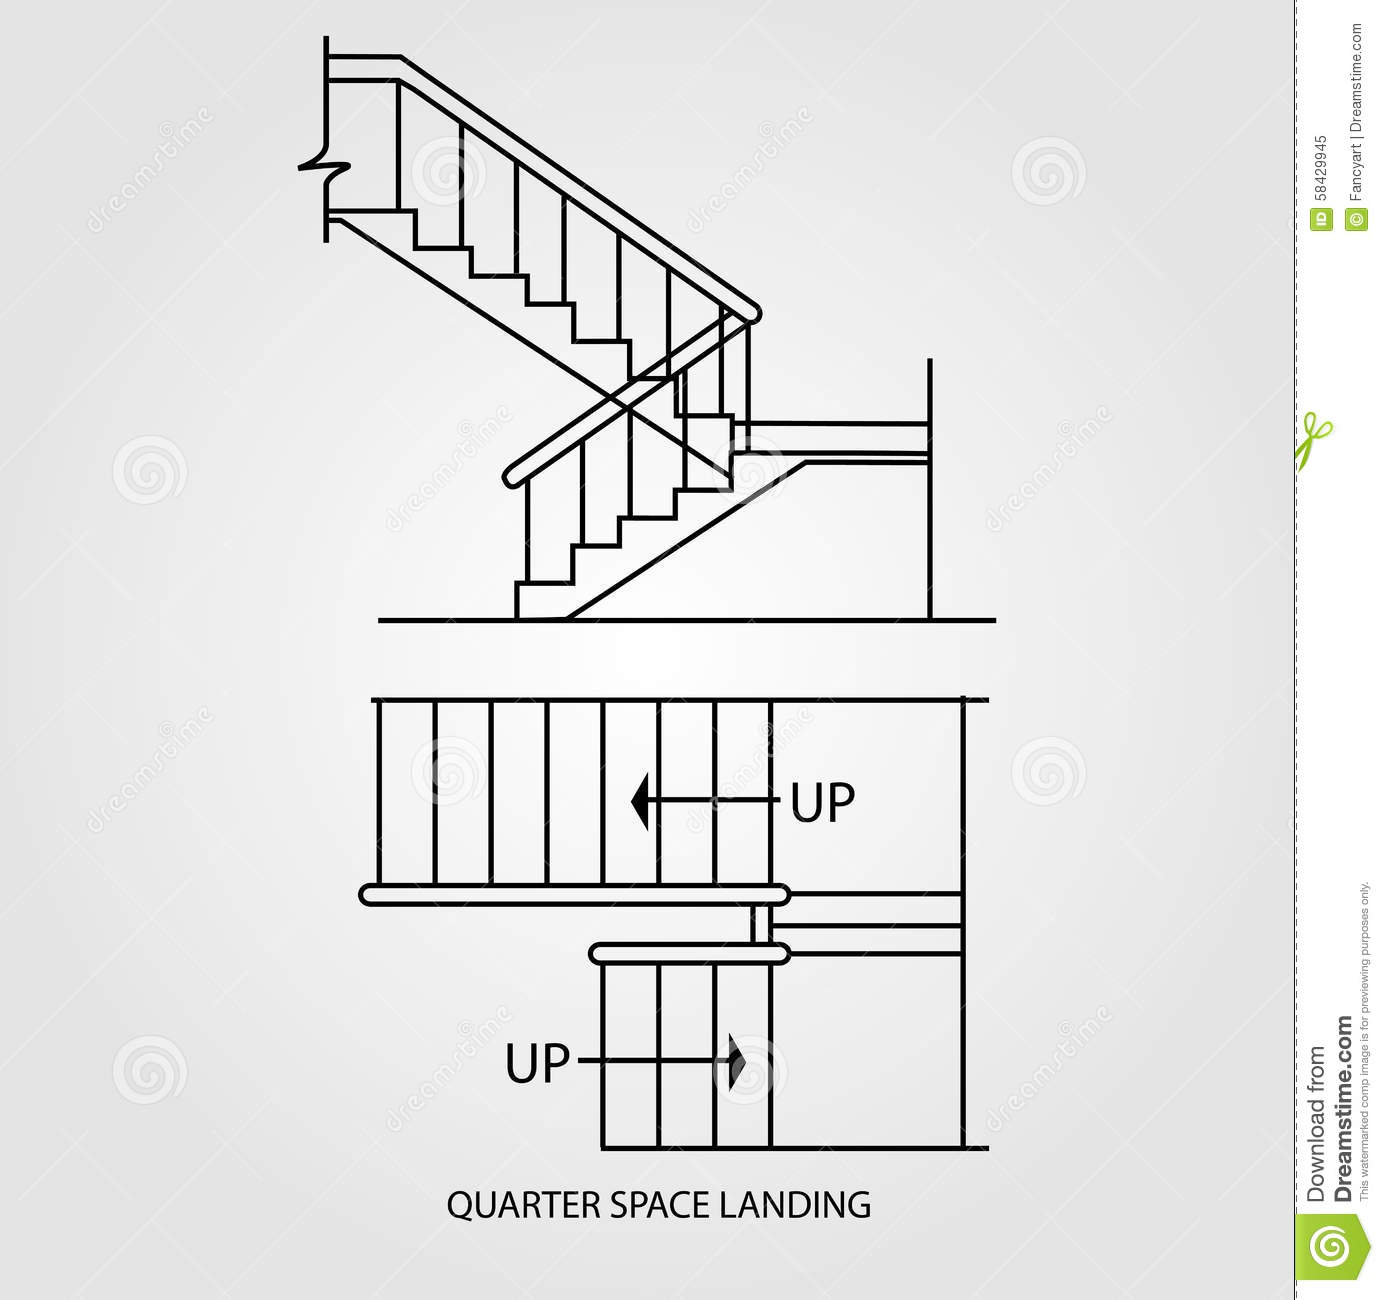 Top view and front view of a quarter space landing stair